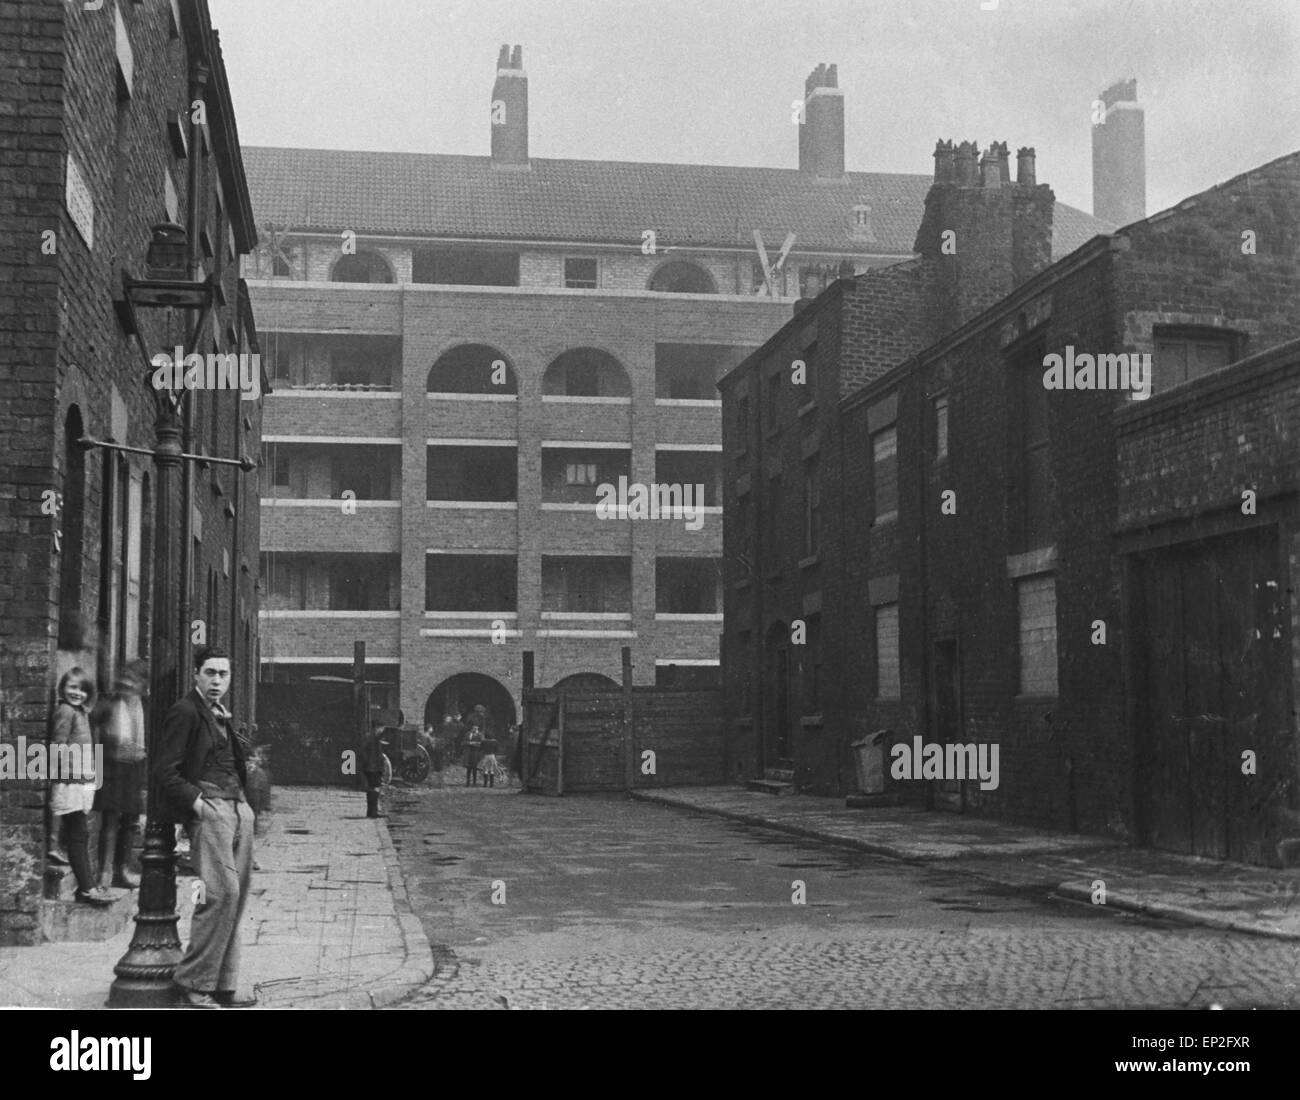 6 - 44 Torboch Street, Liverpool, part of the slum clearance redevelopment 2nd March, 1933 - Stock Image